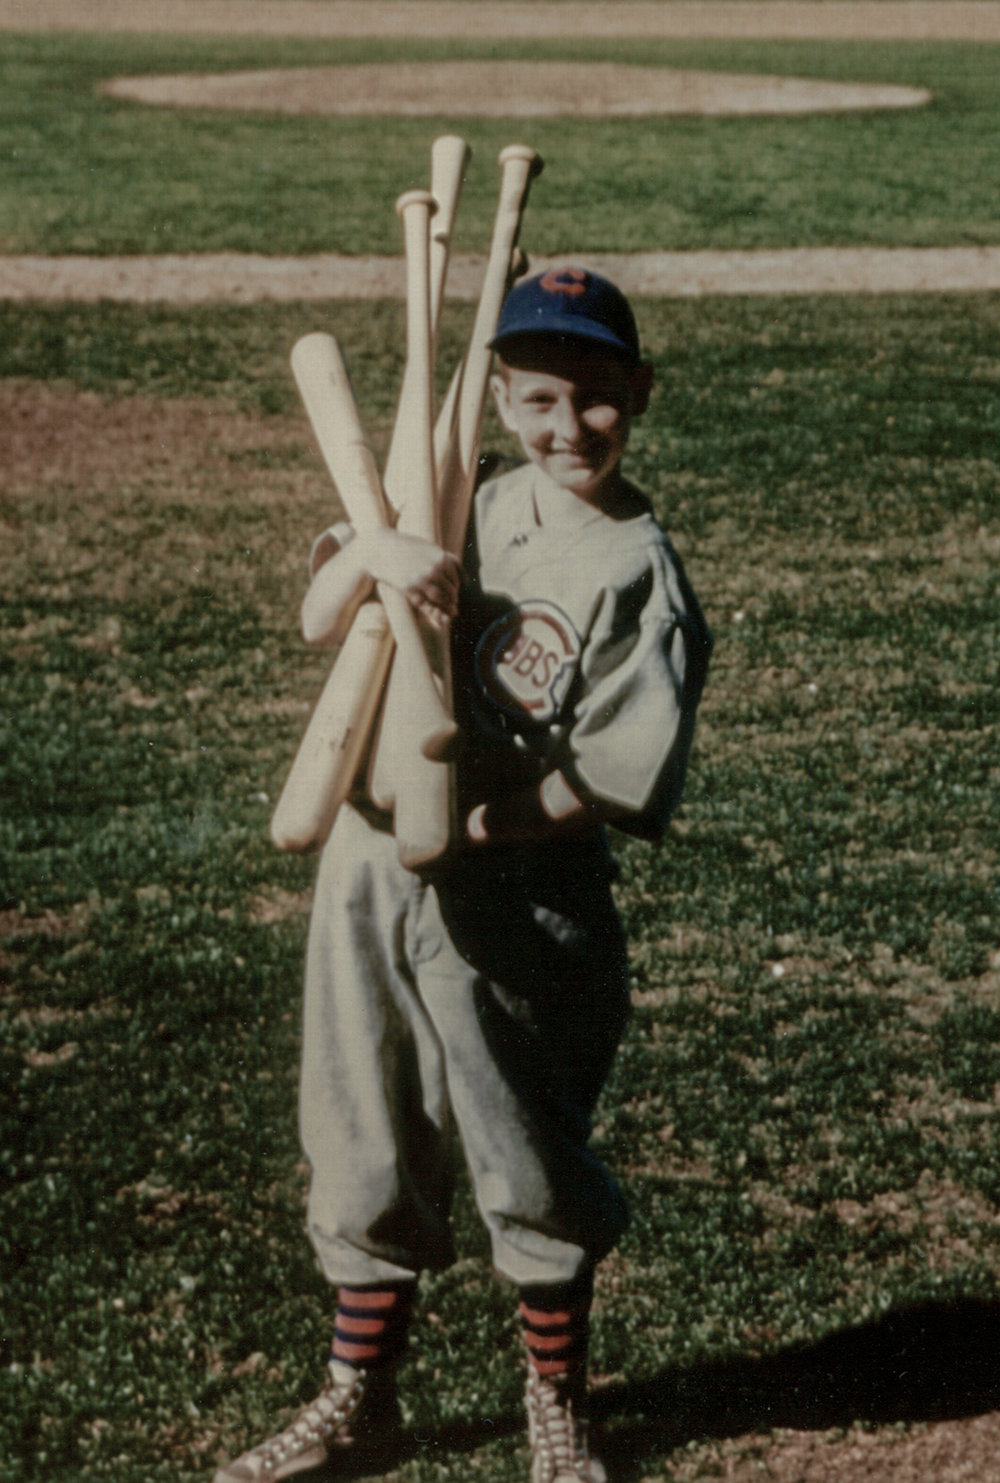 My Dad, 1944 or 45?  We believe my Grandmother took the image of him in Arizona, Spring Training, Chicago Cubs.  A memory for forever if we make it happen!